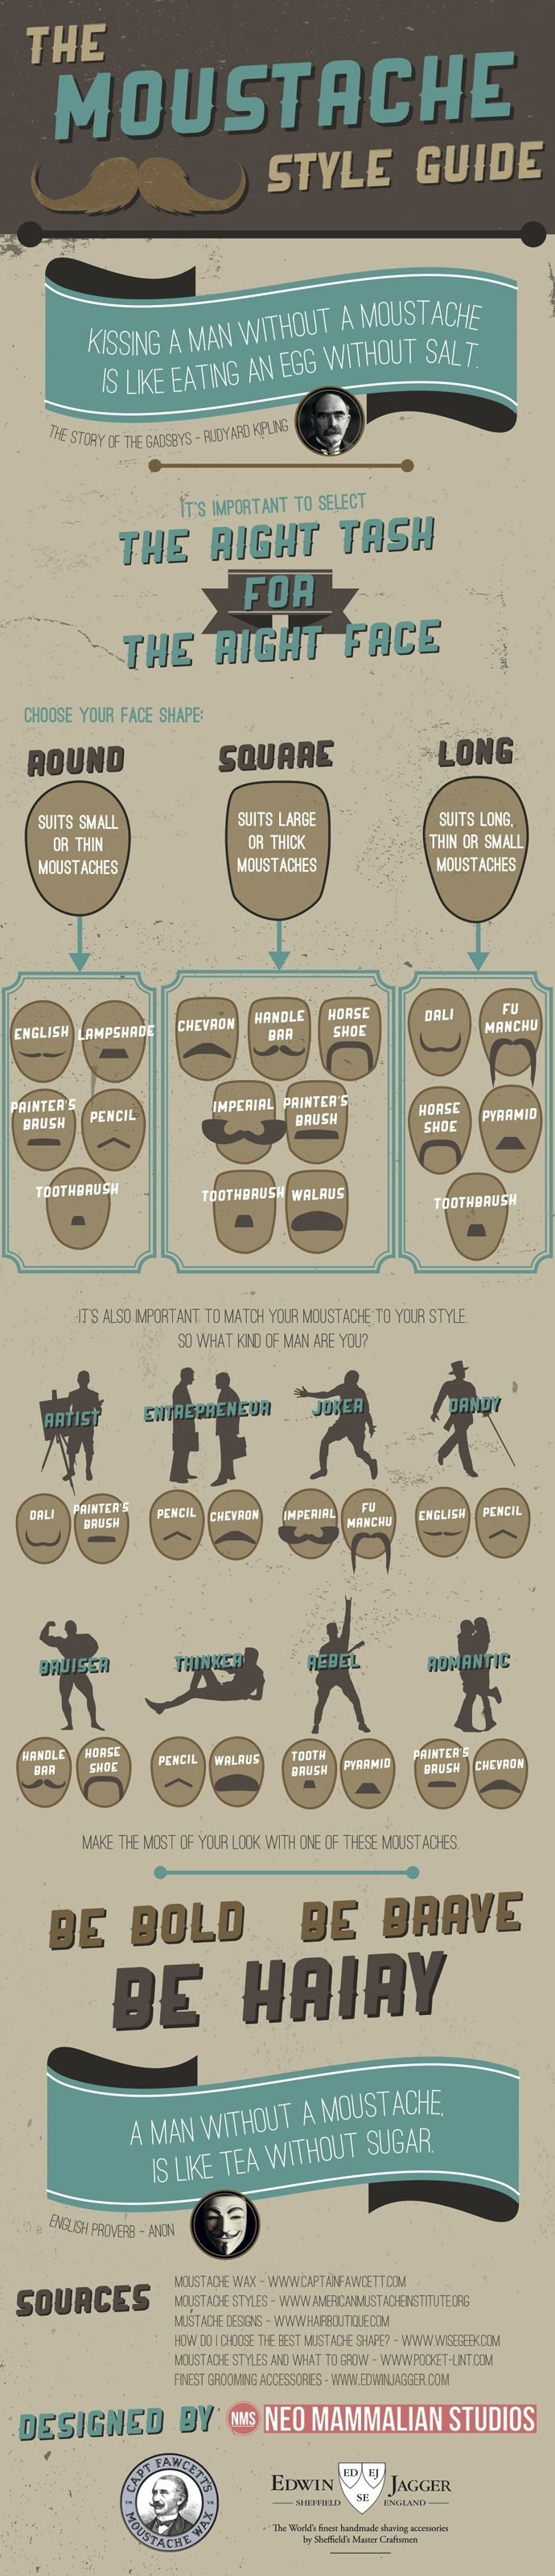 The Moustache Style Guide